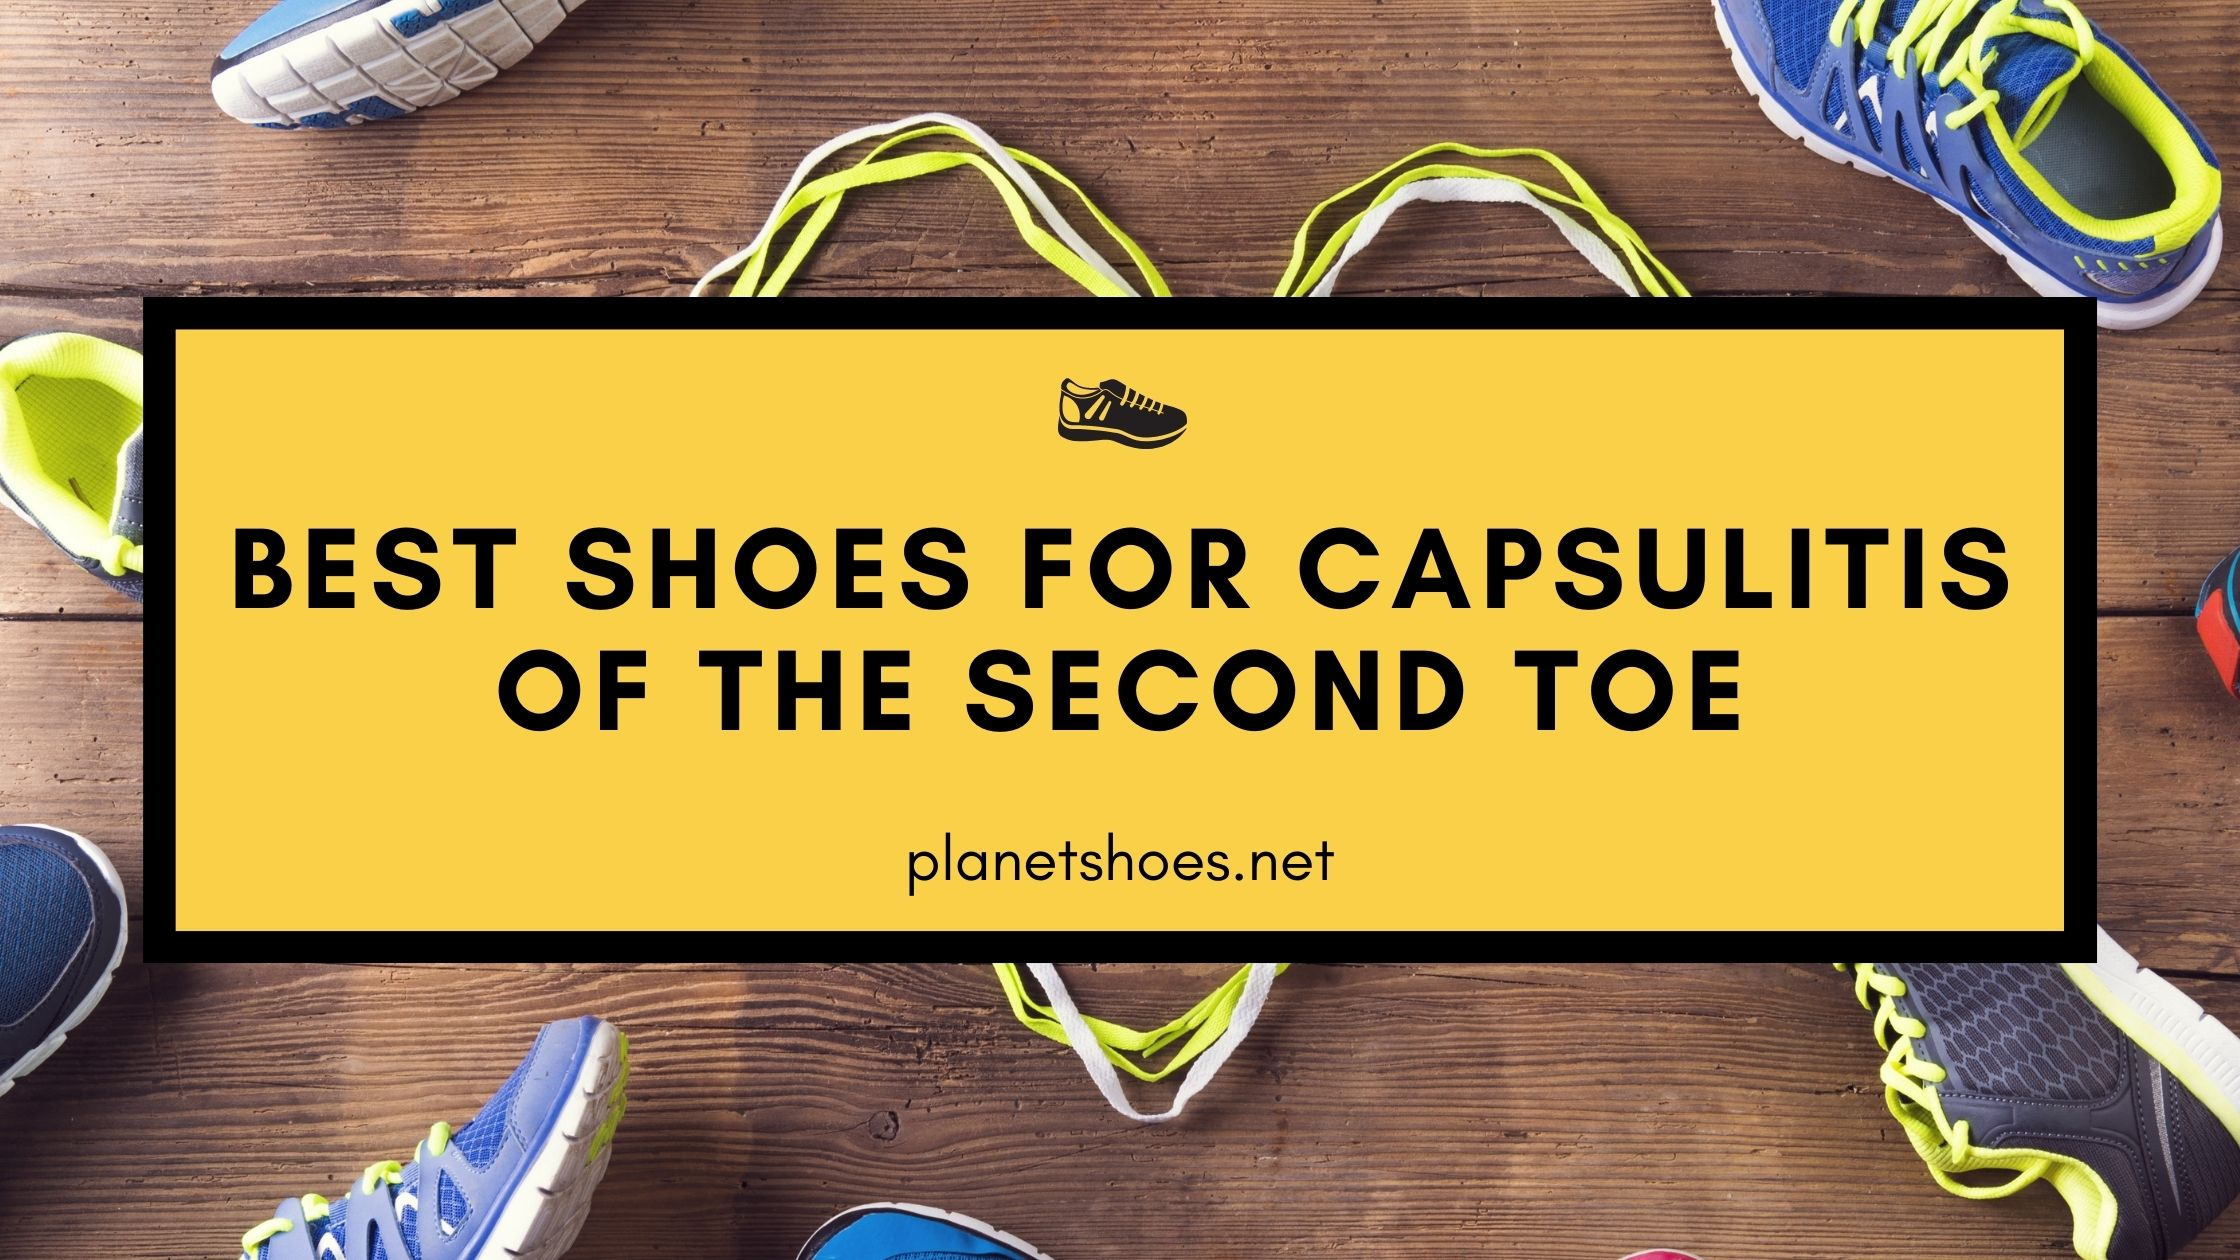 PS-Best shoes for capsulitis of the second toe